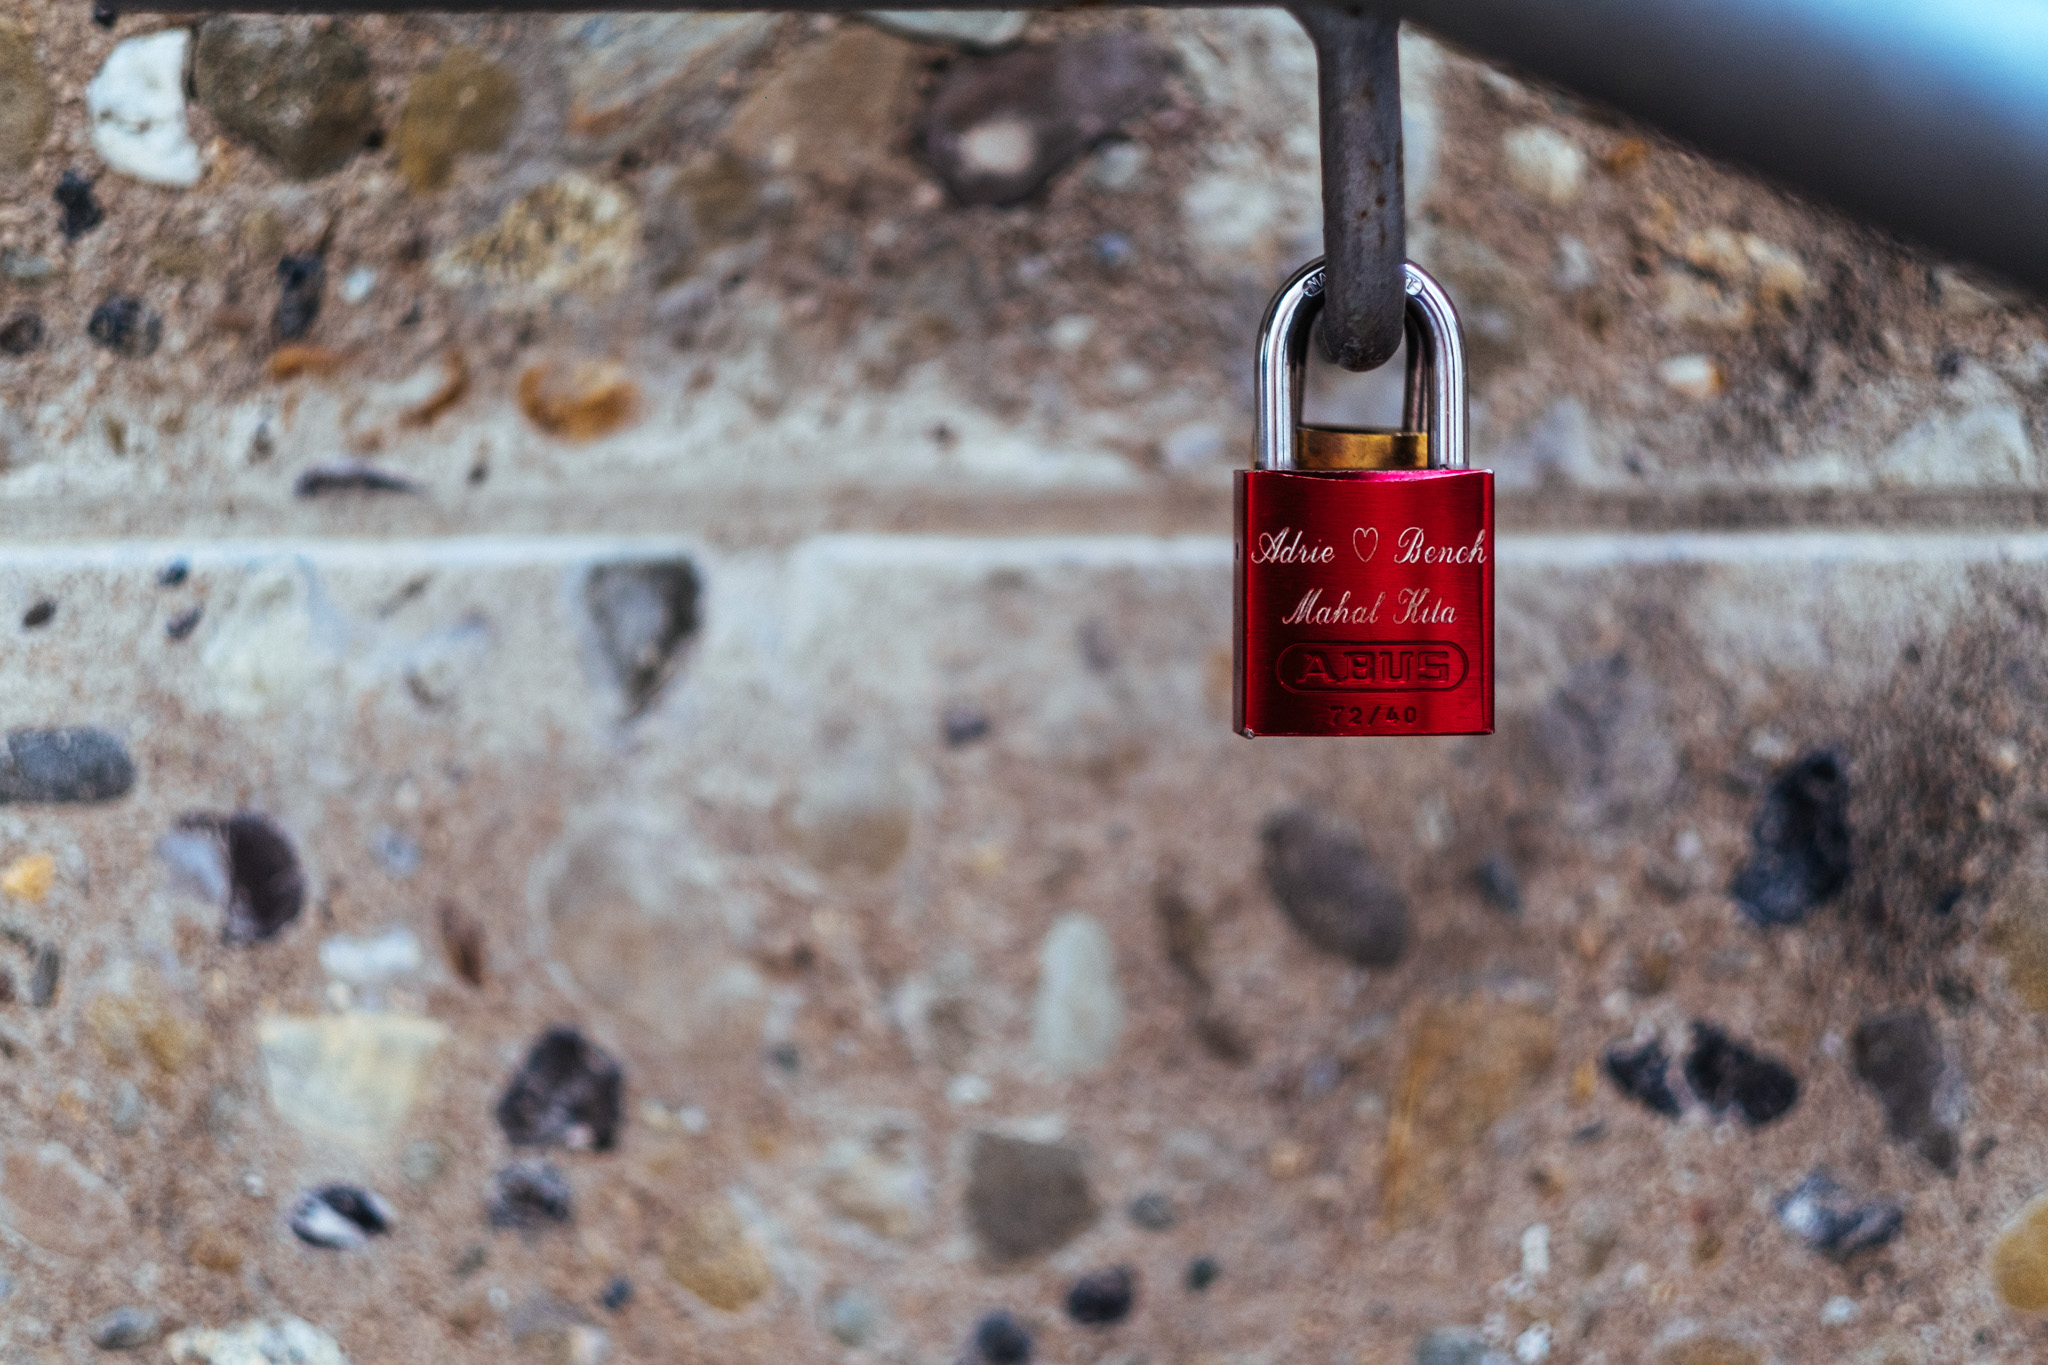 Found this little lock probably left by a couple from the Philippines because Mahal Kita means I Love You in Tagalog.